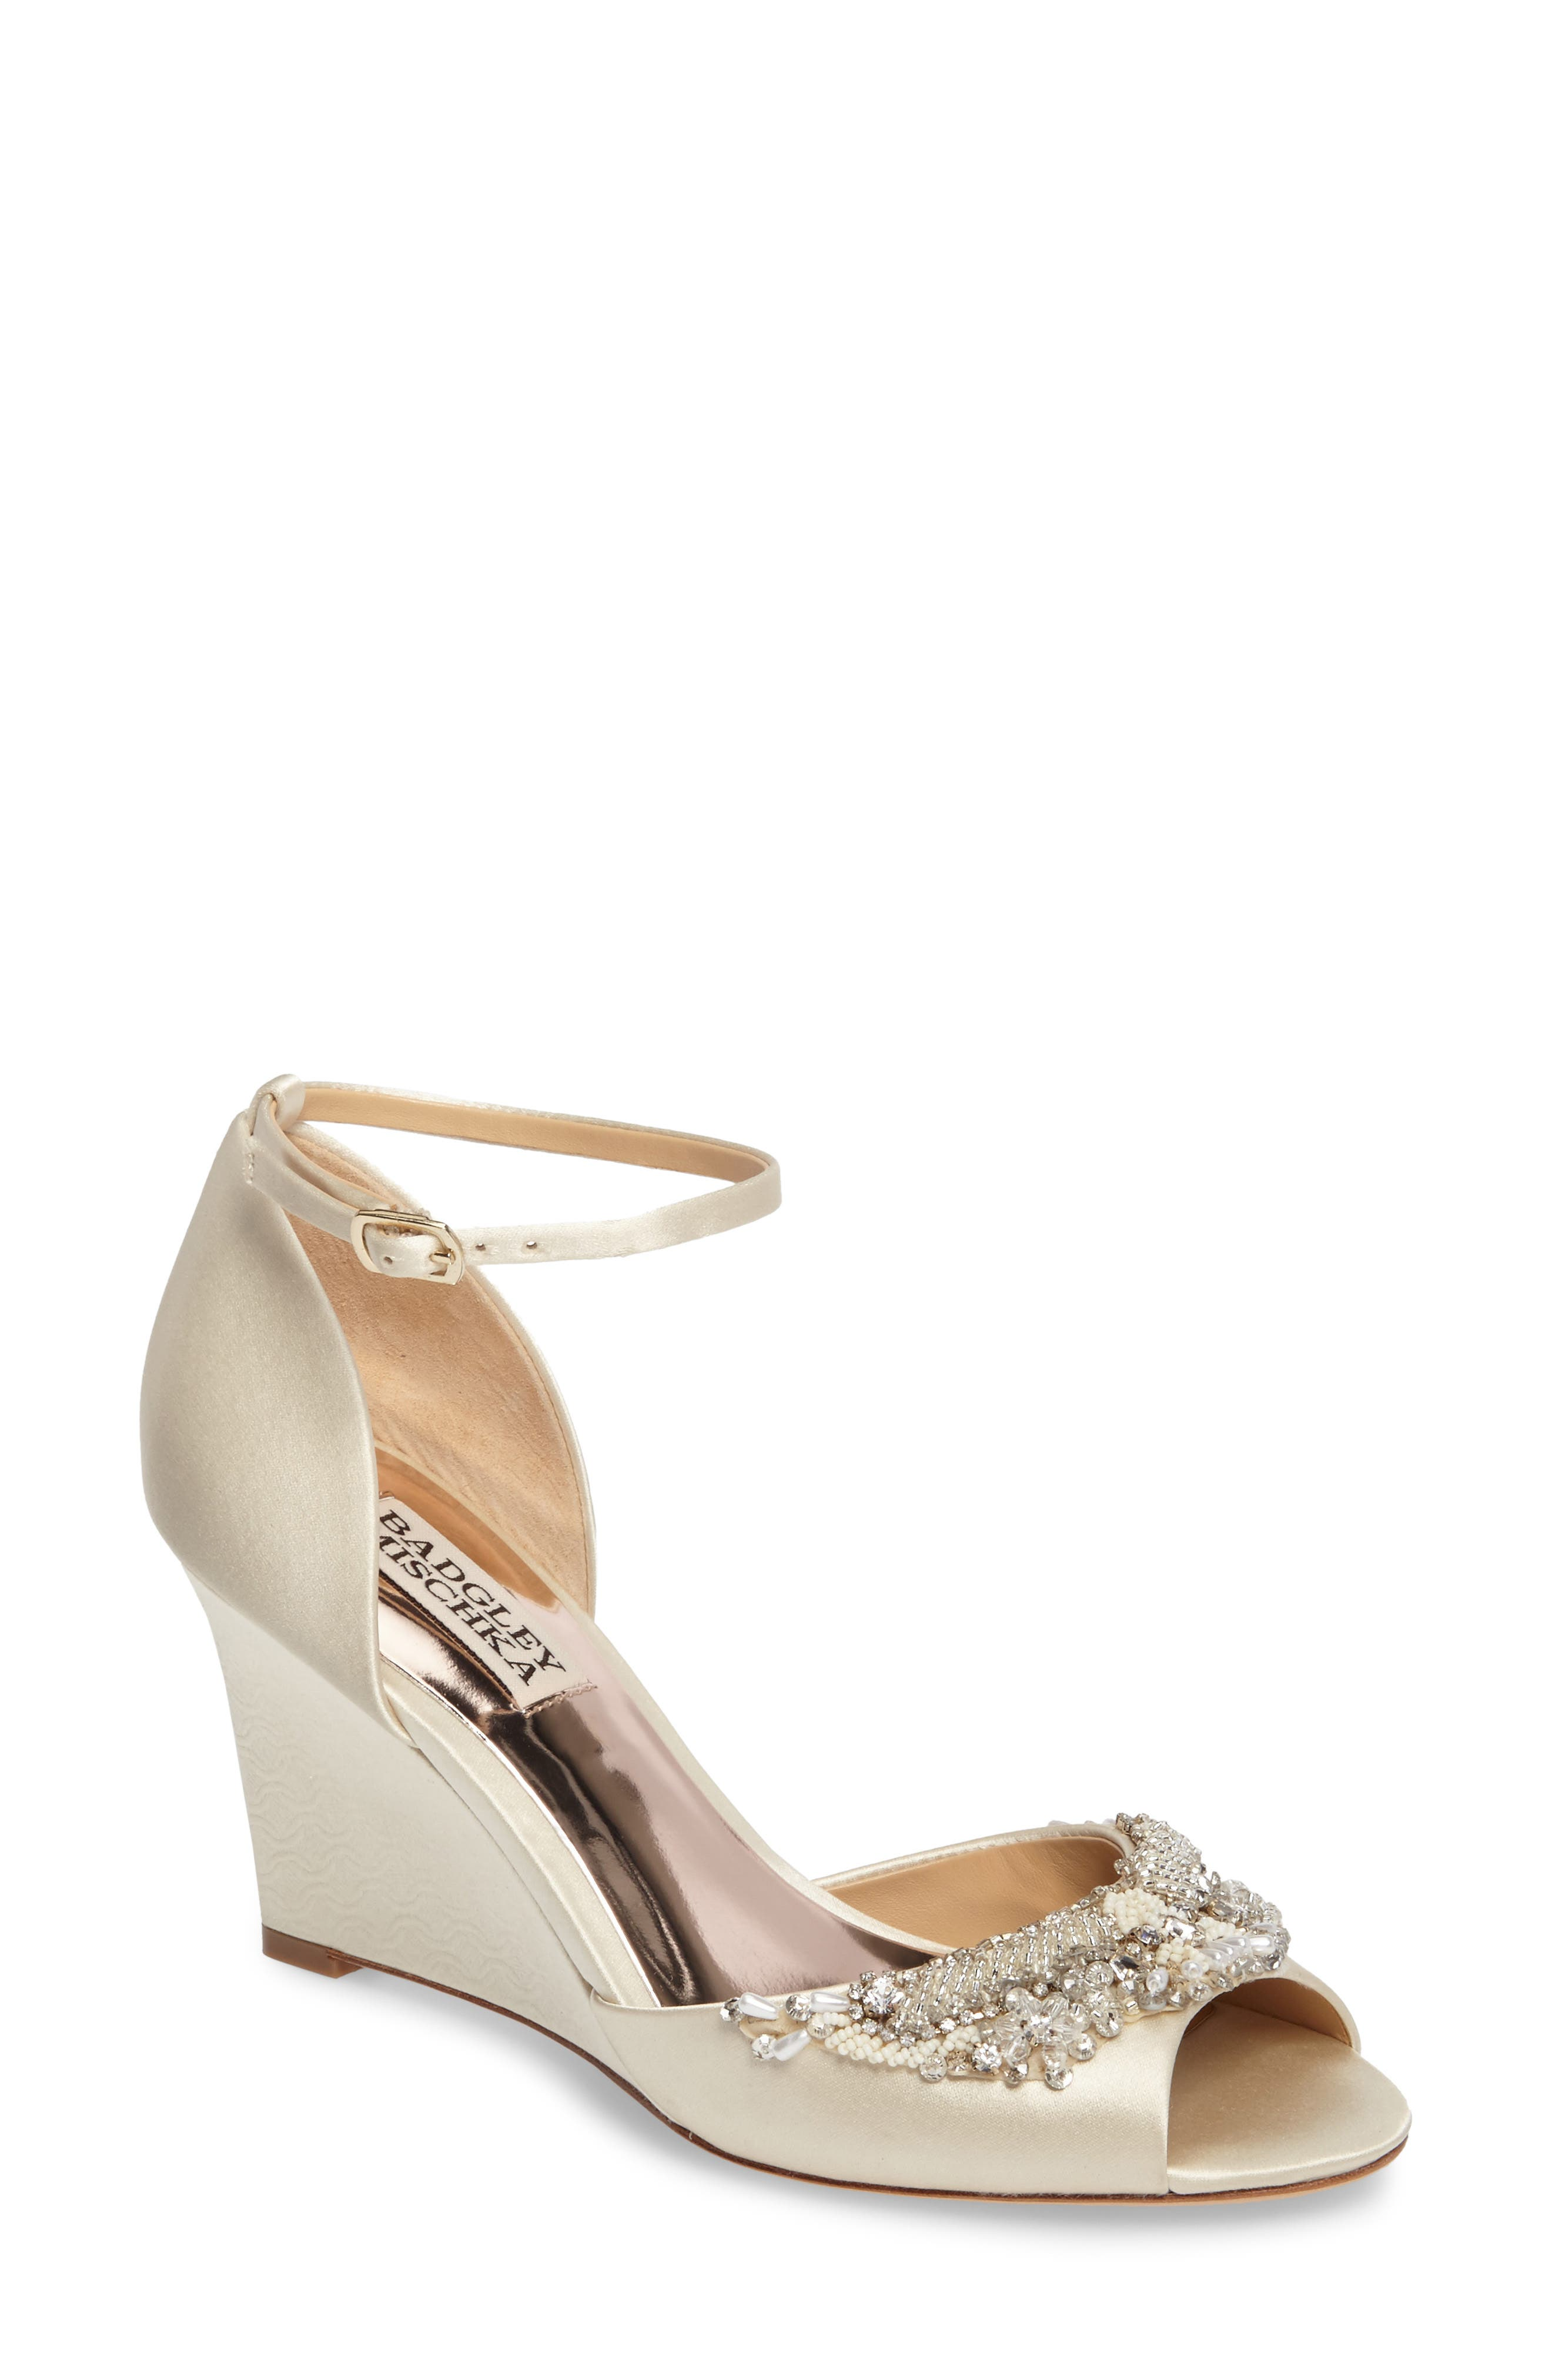 Badgley Mischka Malorie Embellished Sandal (Women)